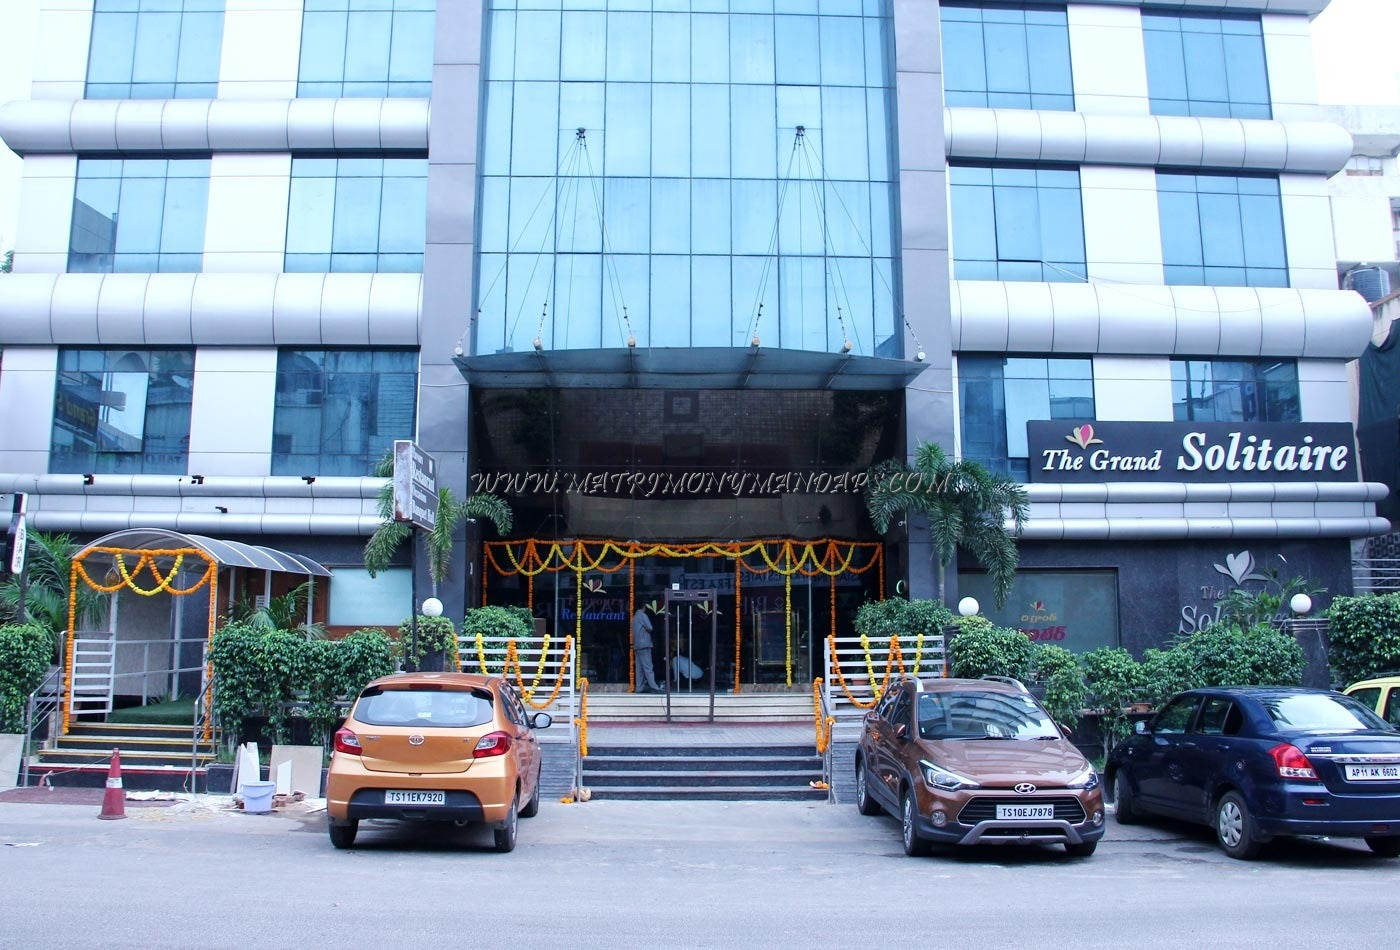 Find the availability of the The Grand Solitaire Hotel (A/C) in s p road, Hyderabad and avail special offers